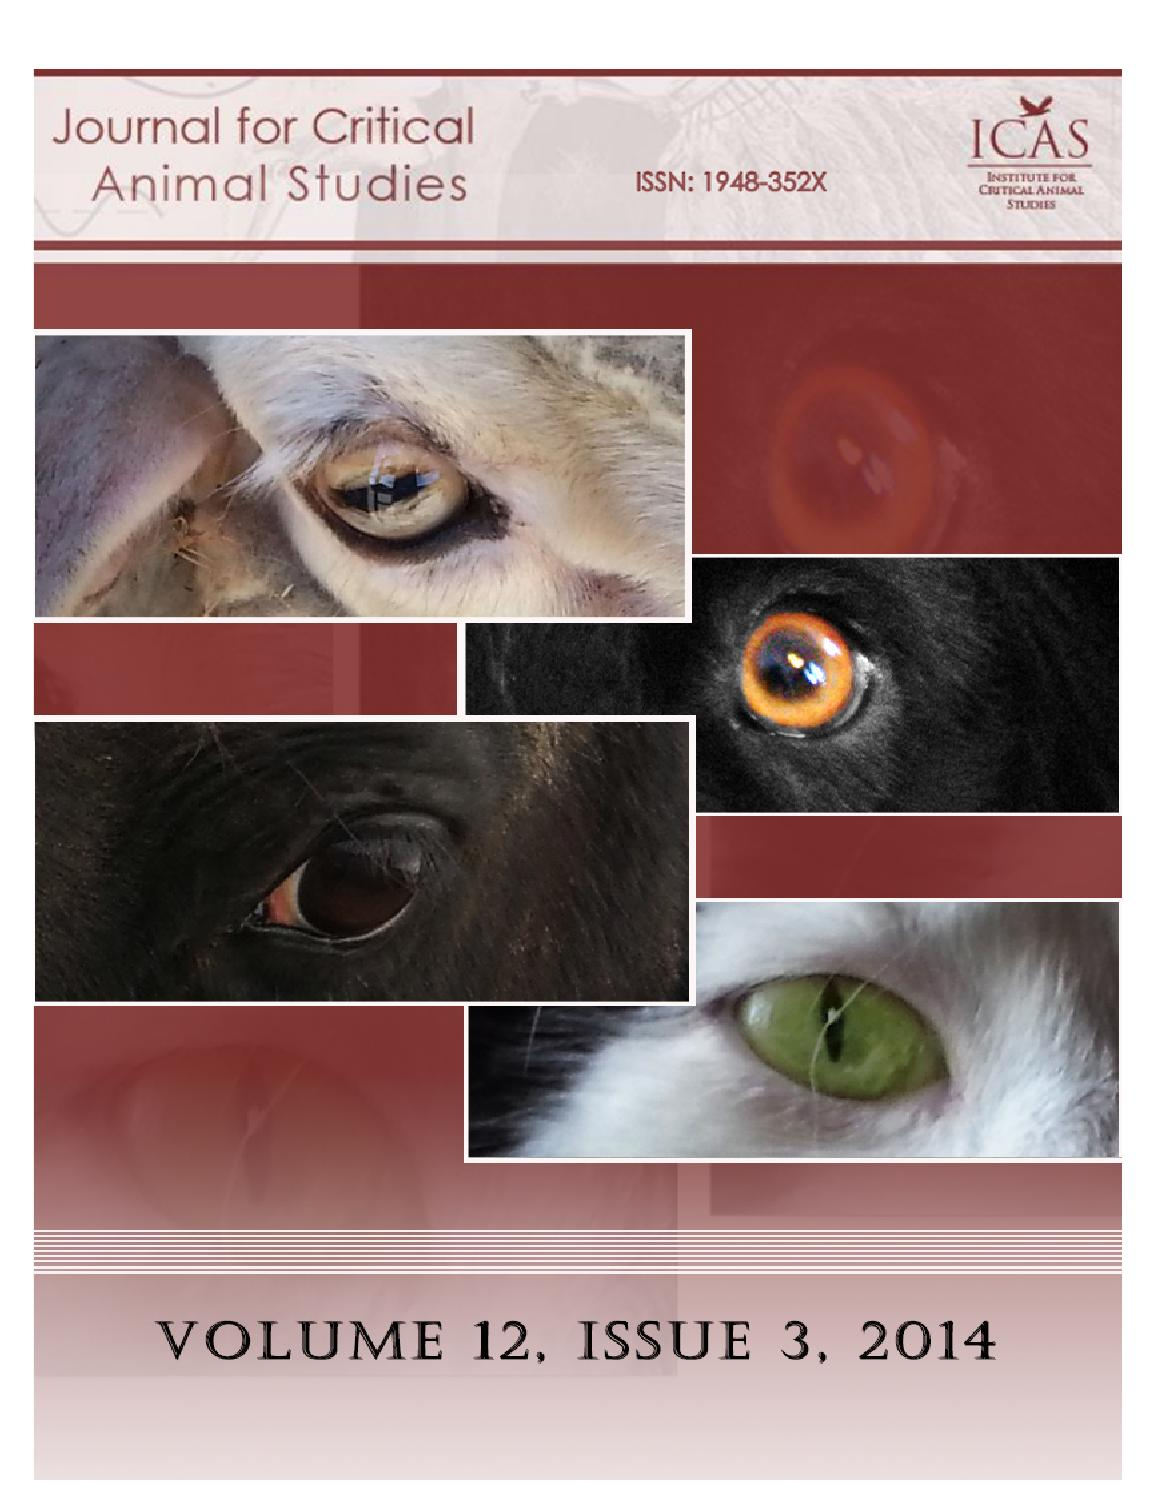 Jcas Volume 12 Issue 3 2014 By Icas Critical Animal Studies Issuu